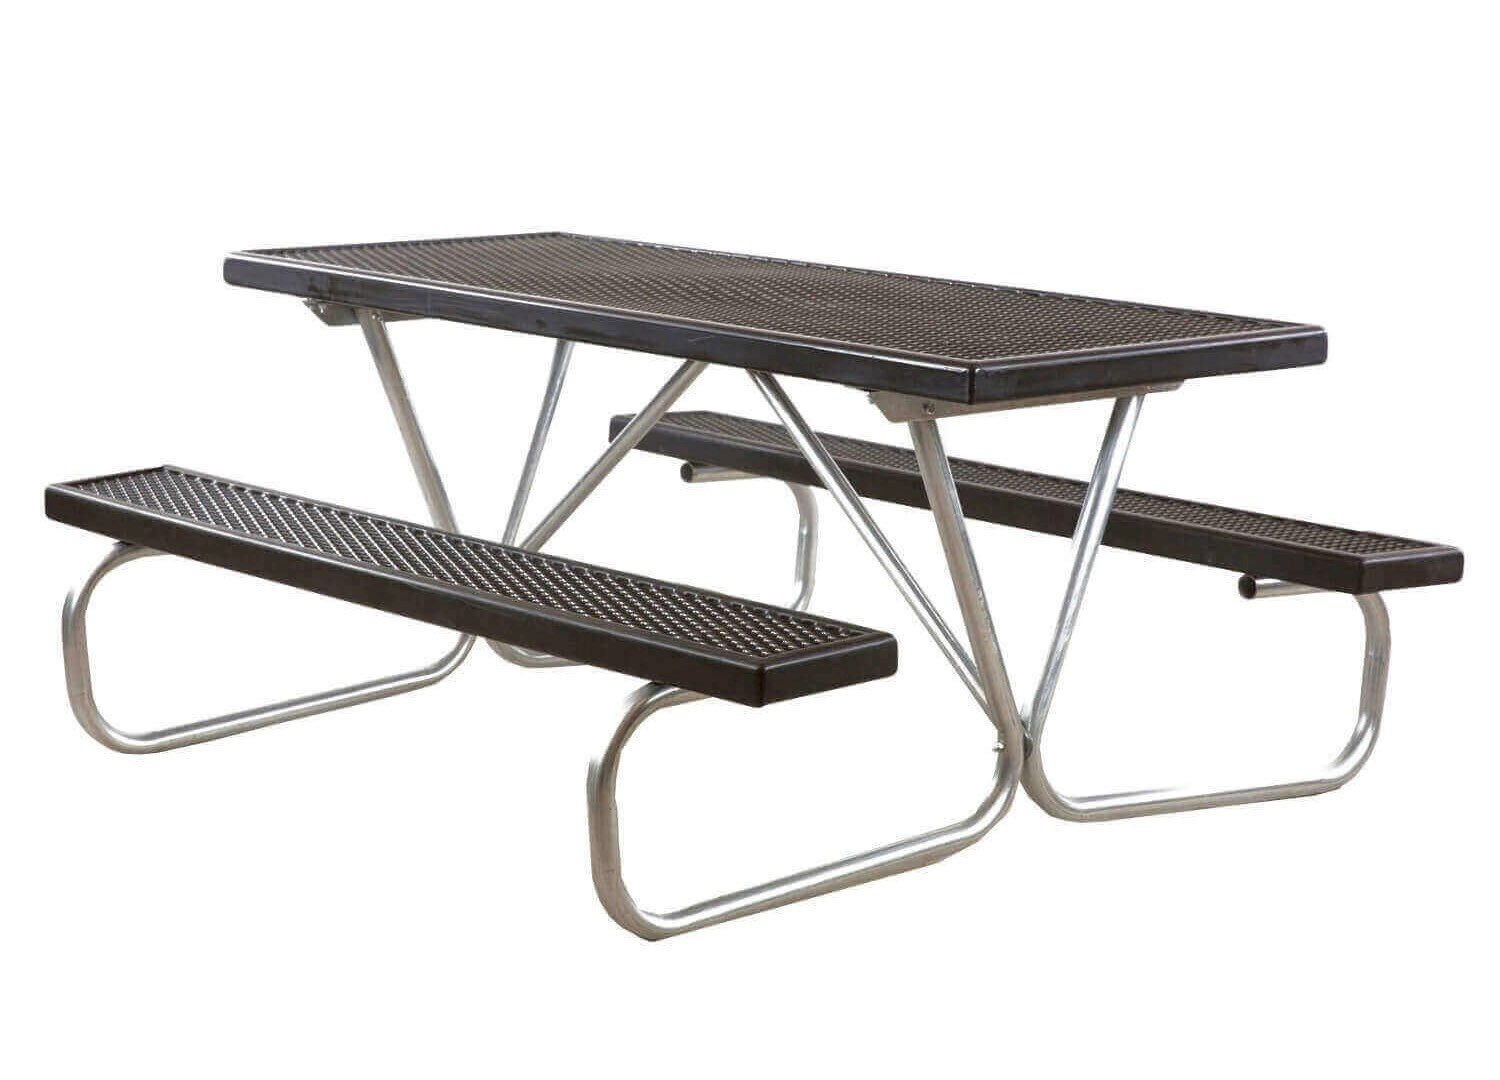 Ft Plastisol Coated Metal Picnic Table With Galvanized Bolted - Black metal picnic table